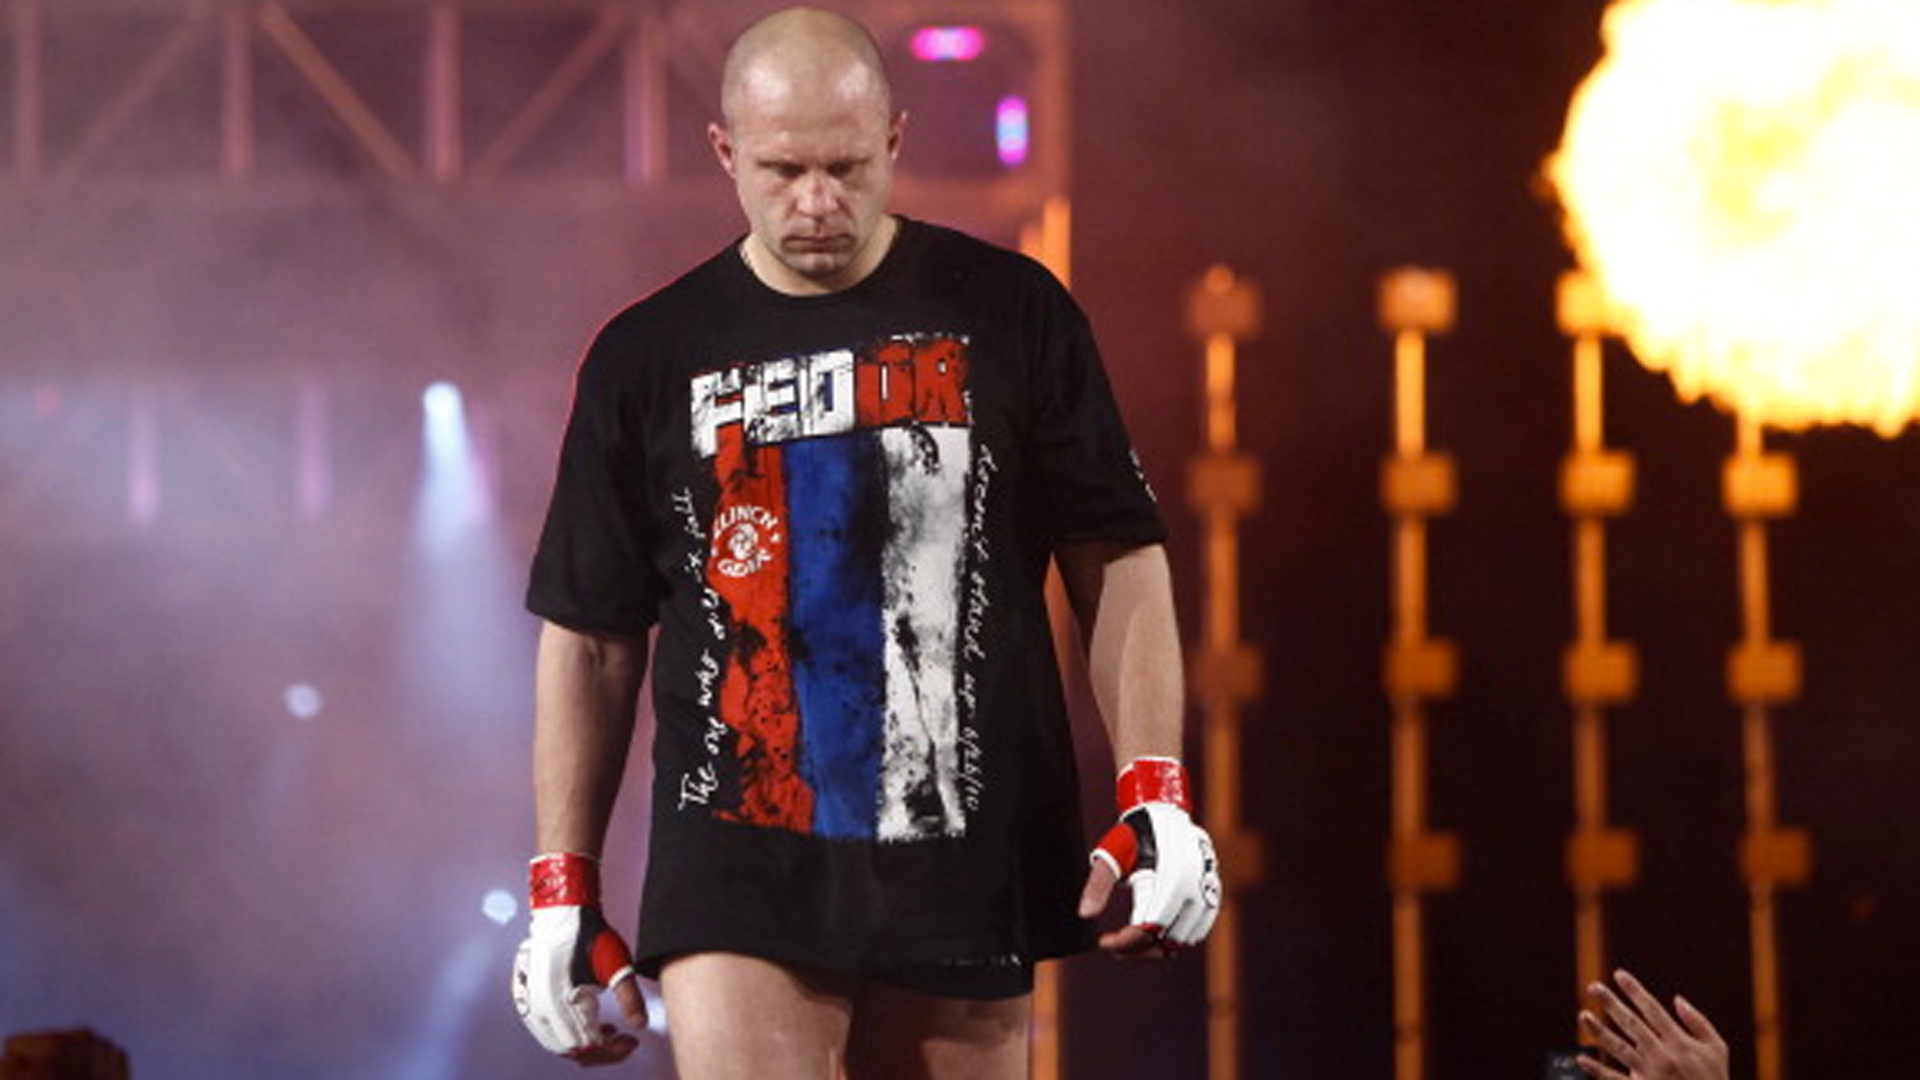 Oleg Gazmanov poems to congratulate fighter Fedor Emelianenko